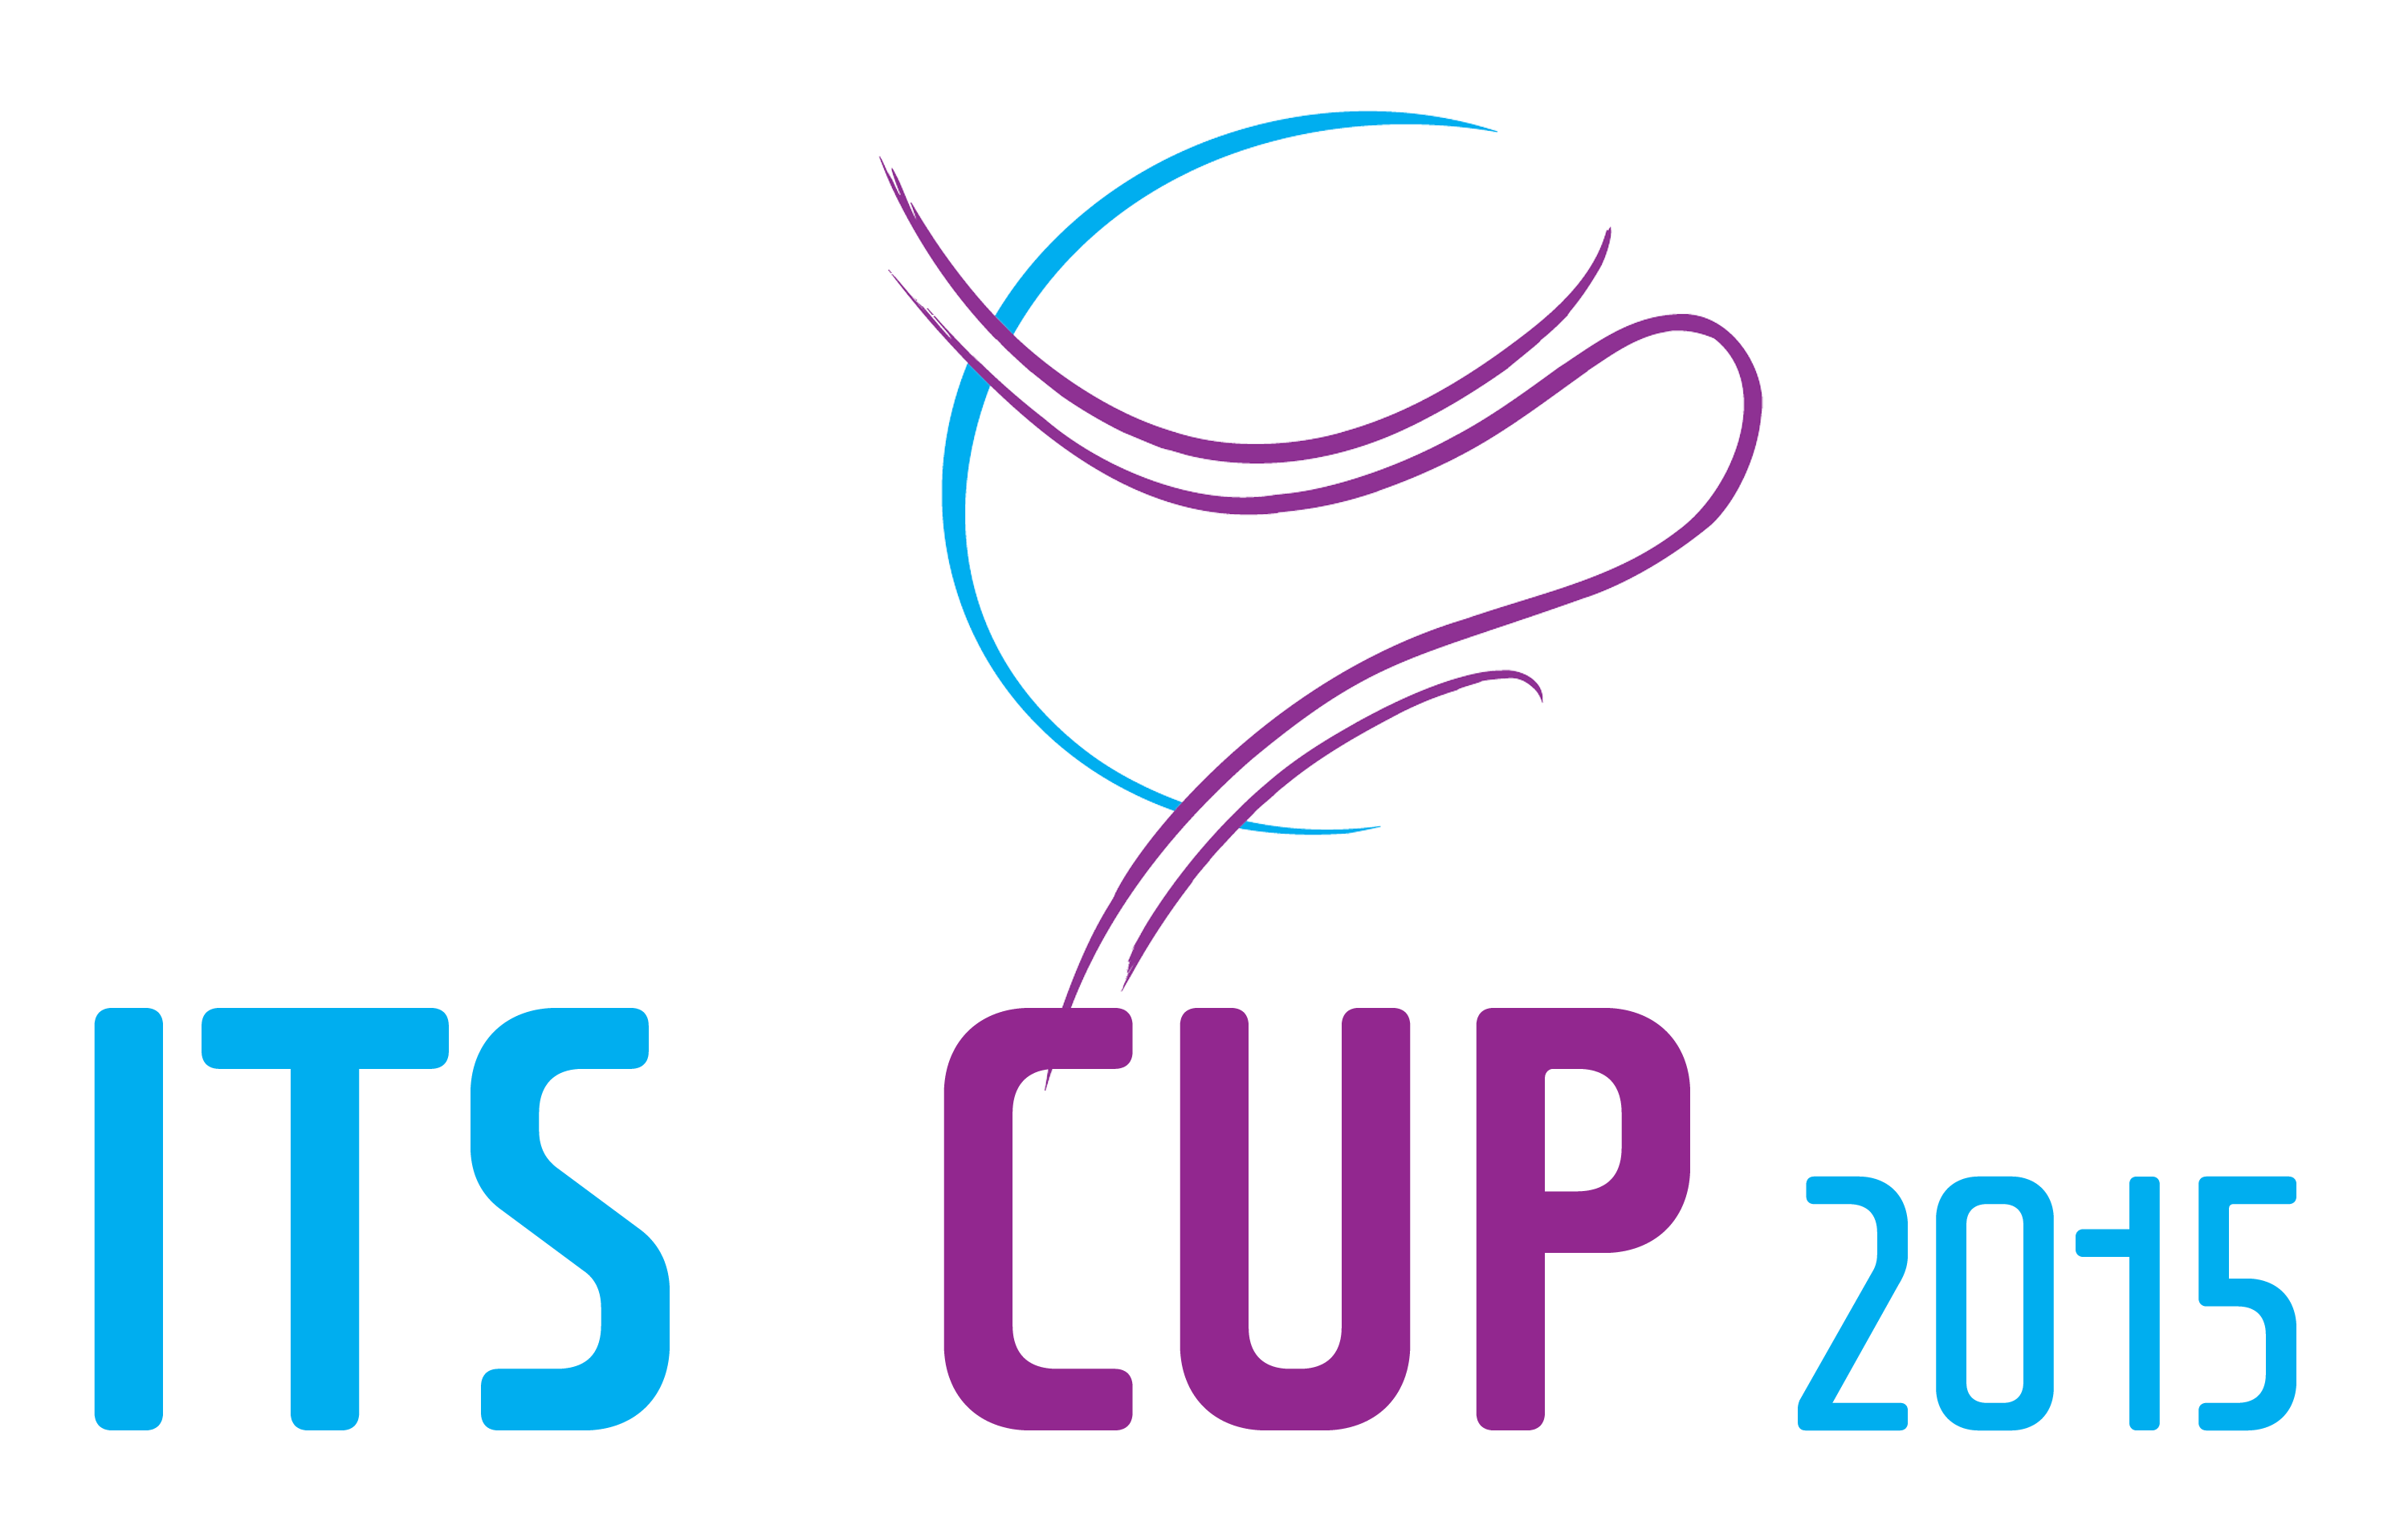 Logo_ITS_CUP_2015_logo01.png - 300.54 KB